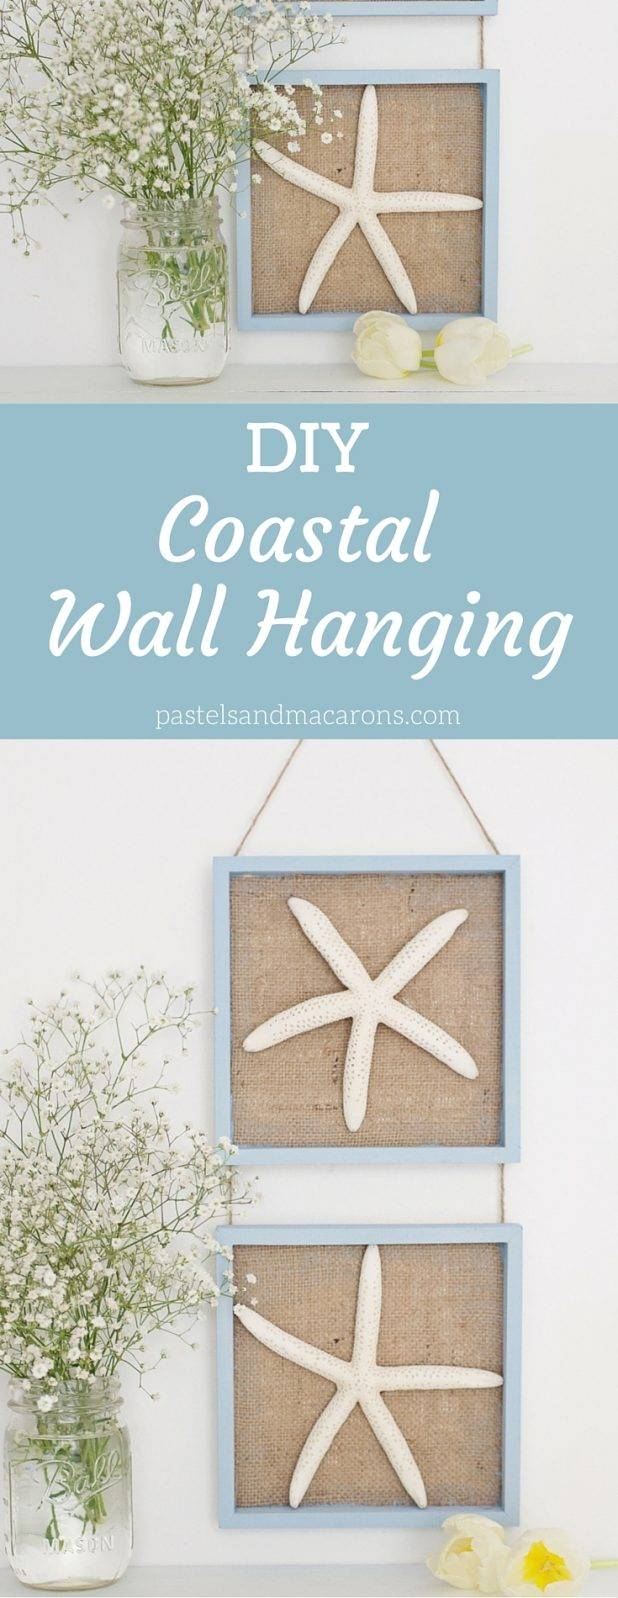 Amazing Coastal Decor Wall Clocks Image Of Turquoise Coastal Intended For Current Crate Barrel Coastal Wall Art (View 3 of 20)